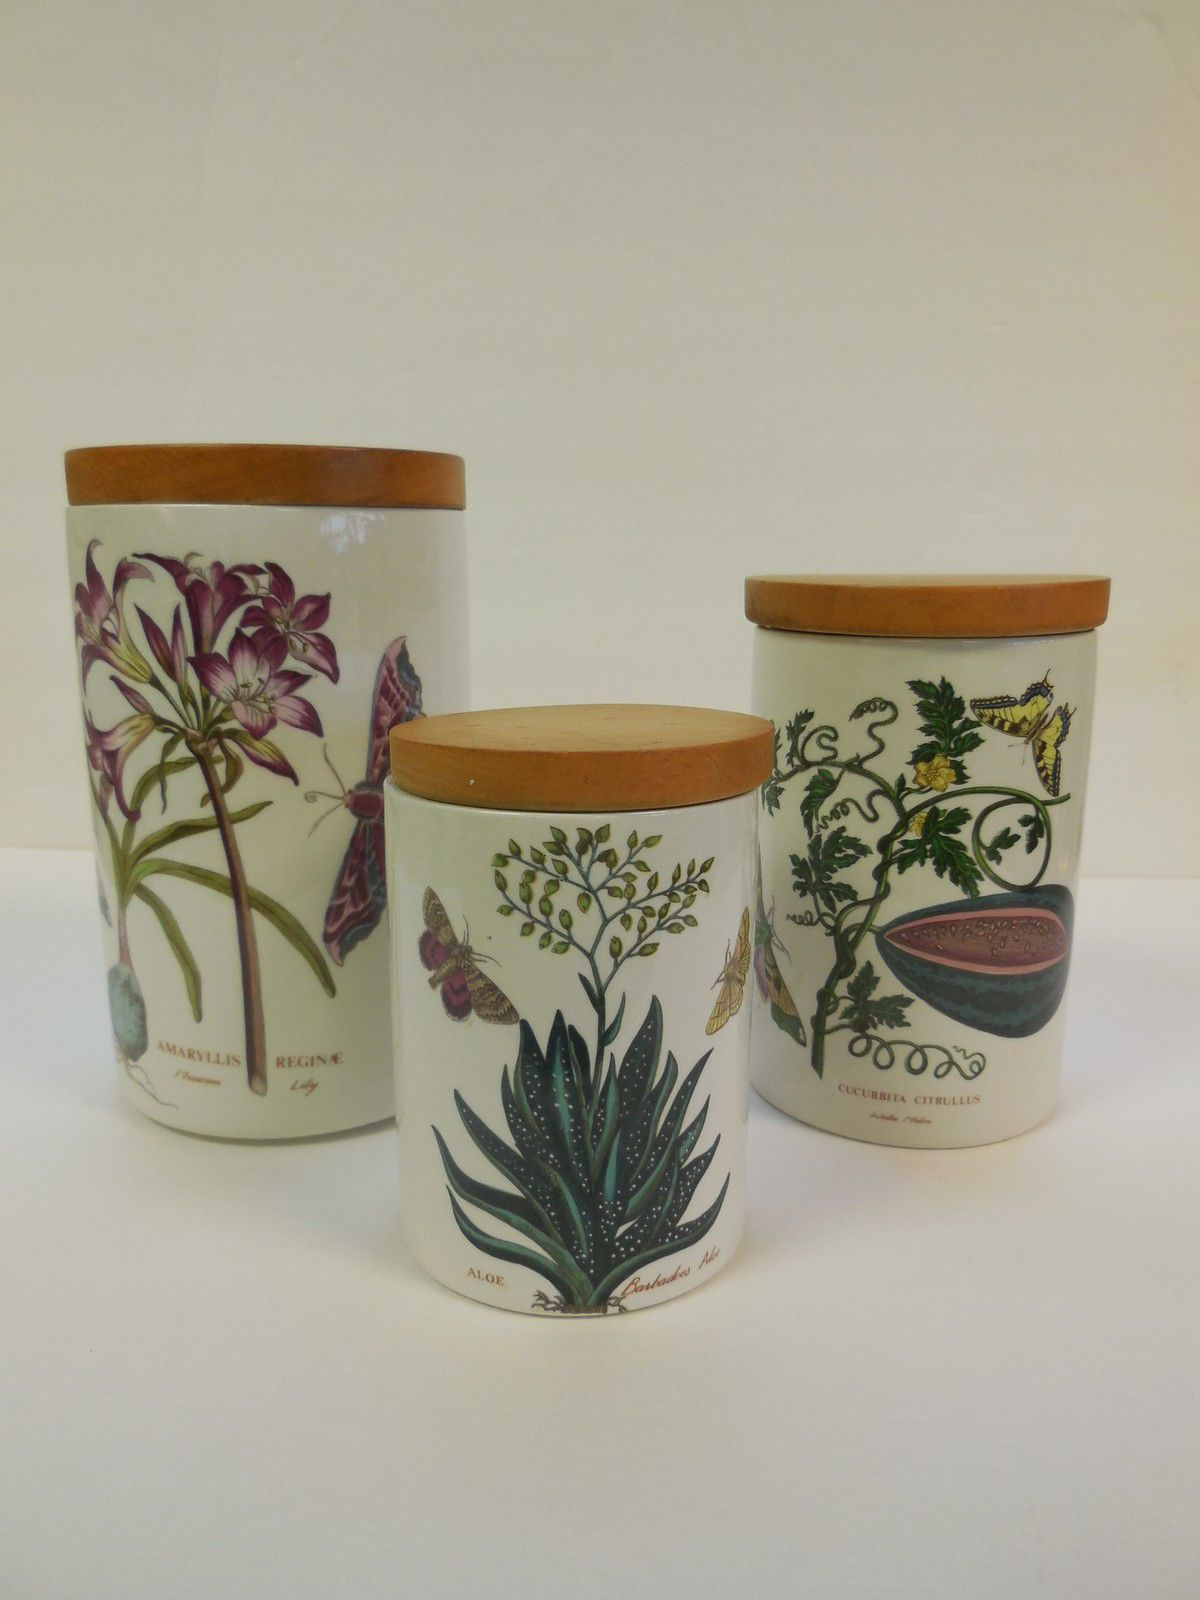 3pc Vintage Portmeirion Pottery Botanic Garden Canister Set Older Mark Aloe Gardens Vintage